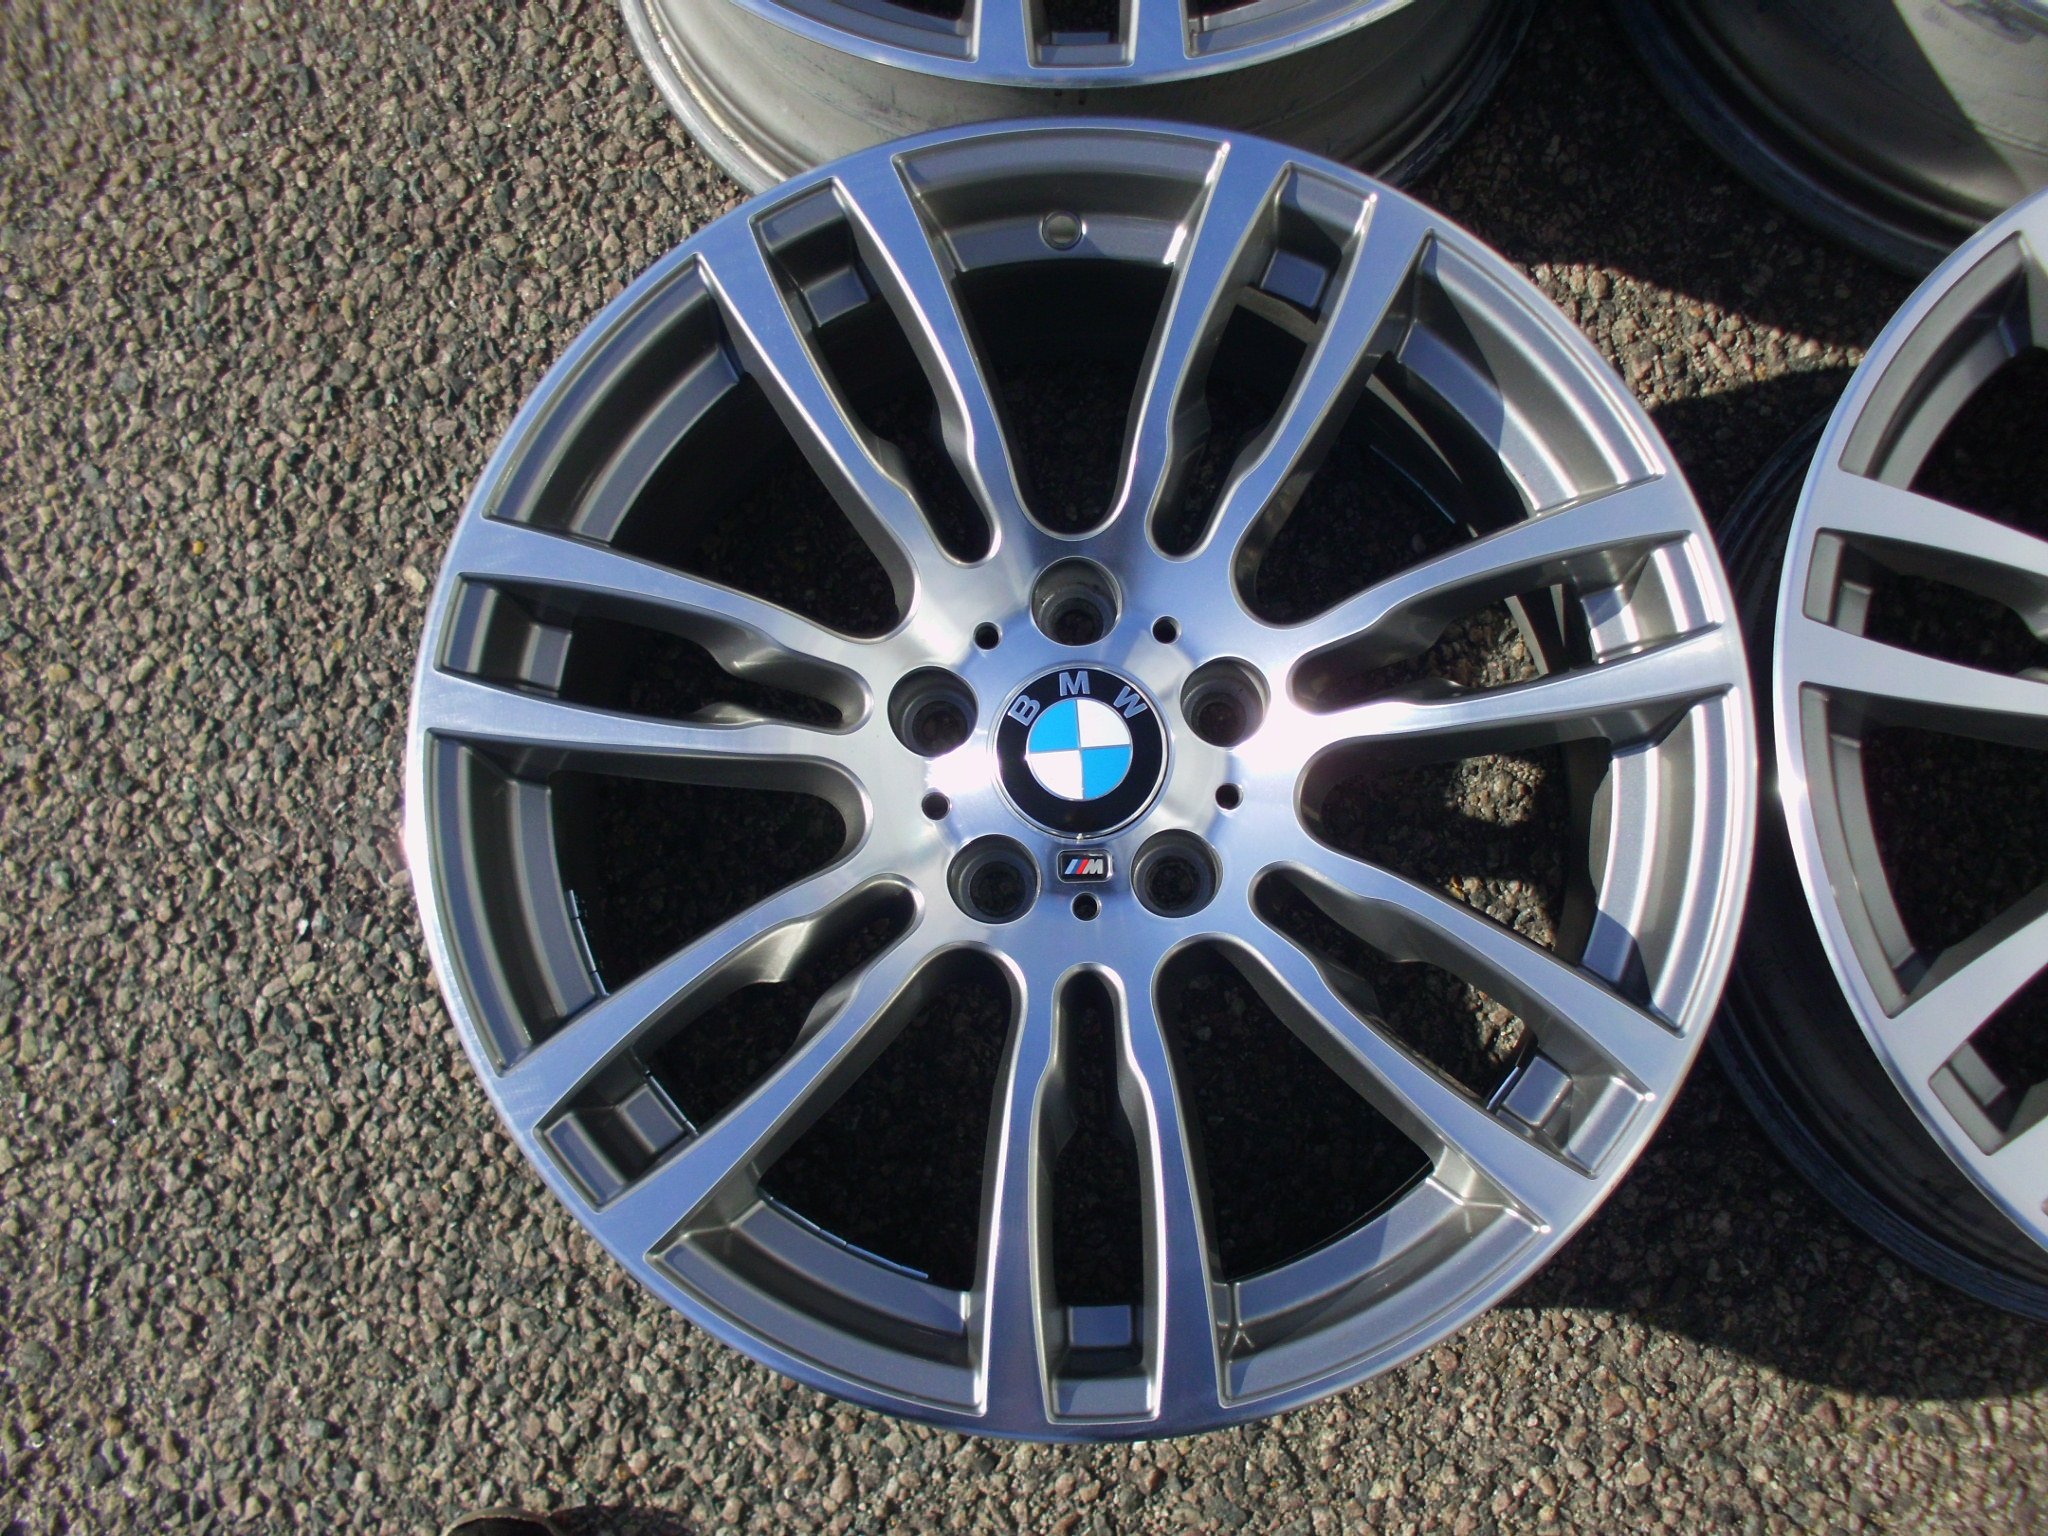 "USED 19"" GENUINE STYLE 403 DOUBLE SPOKE F30 M SPORT ALLOY WHEELS, EXCELLENT CONDITION,WIDE REAR"